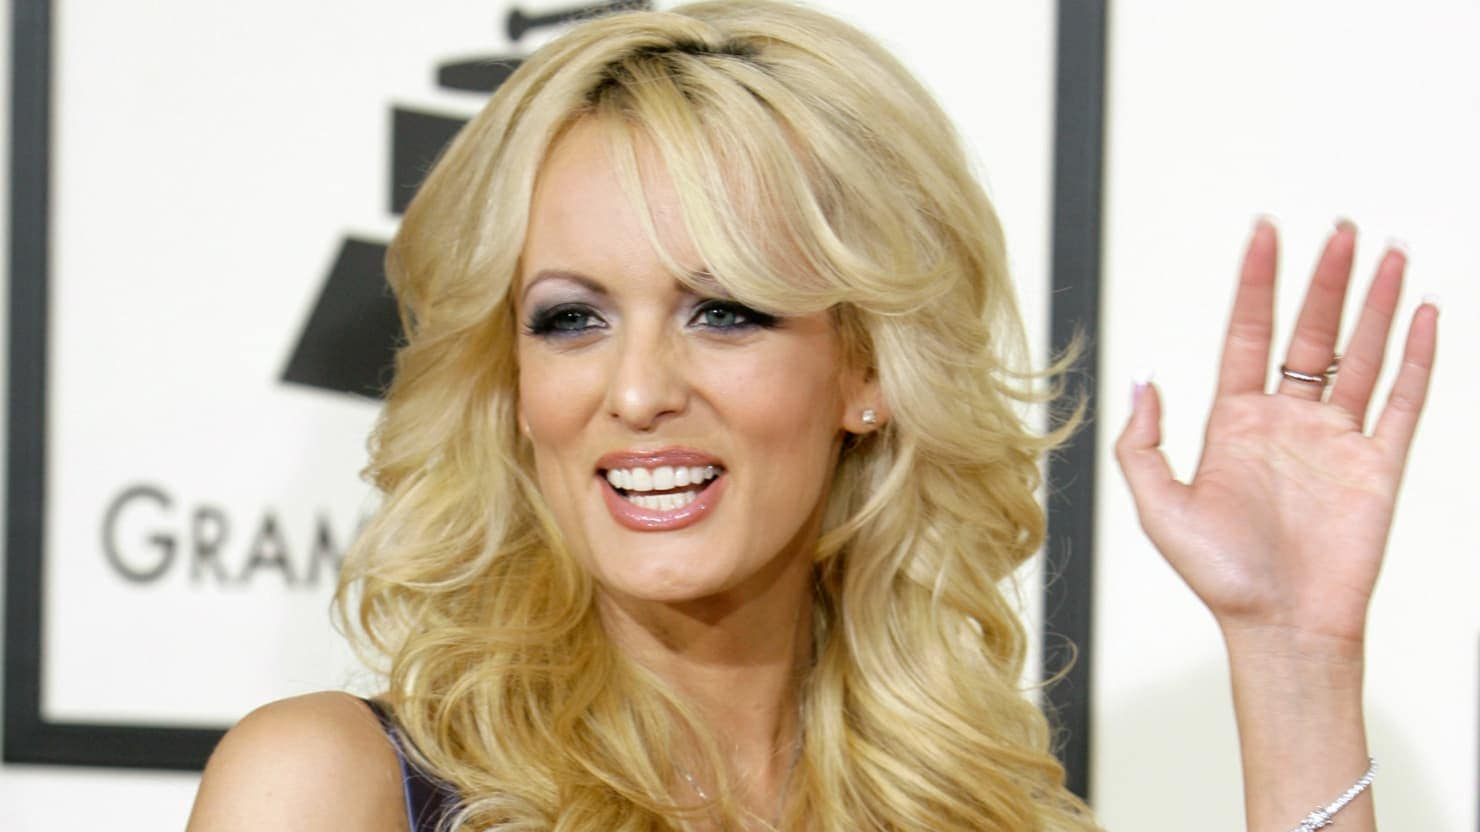 Stormy Daniels Arrested For Smacking Cop In The Face With Her Bare Breasts Charges Since Dropped